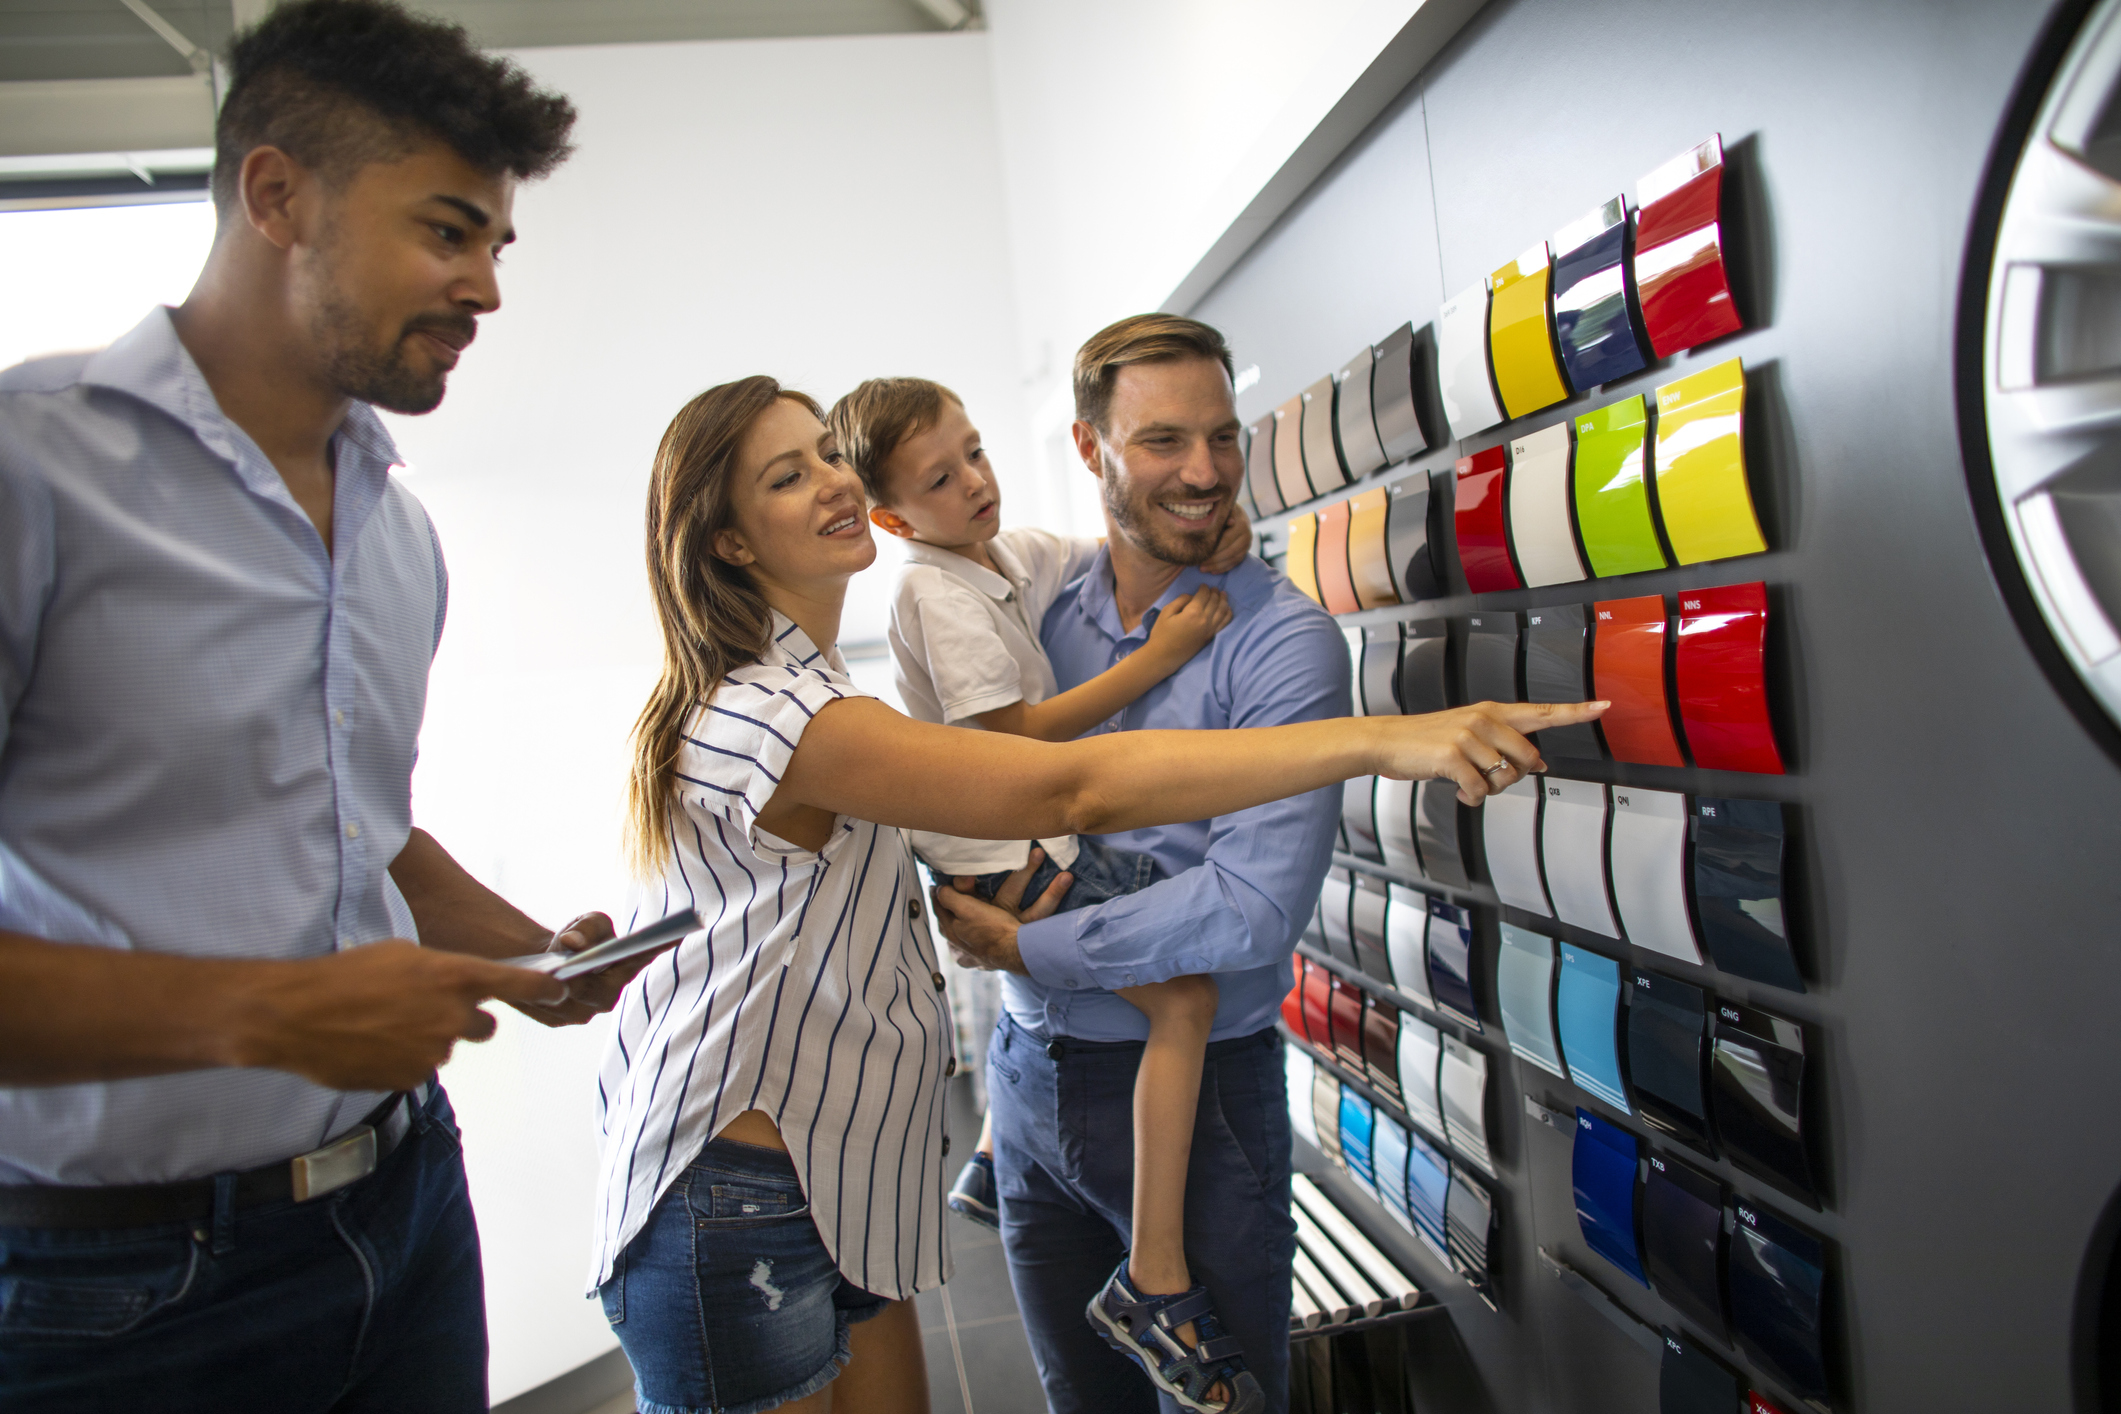 Young multi-ethnic car salesman providing assistance to a family with a young boy in picking out a color for their new car in a car salon.